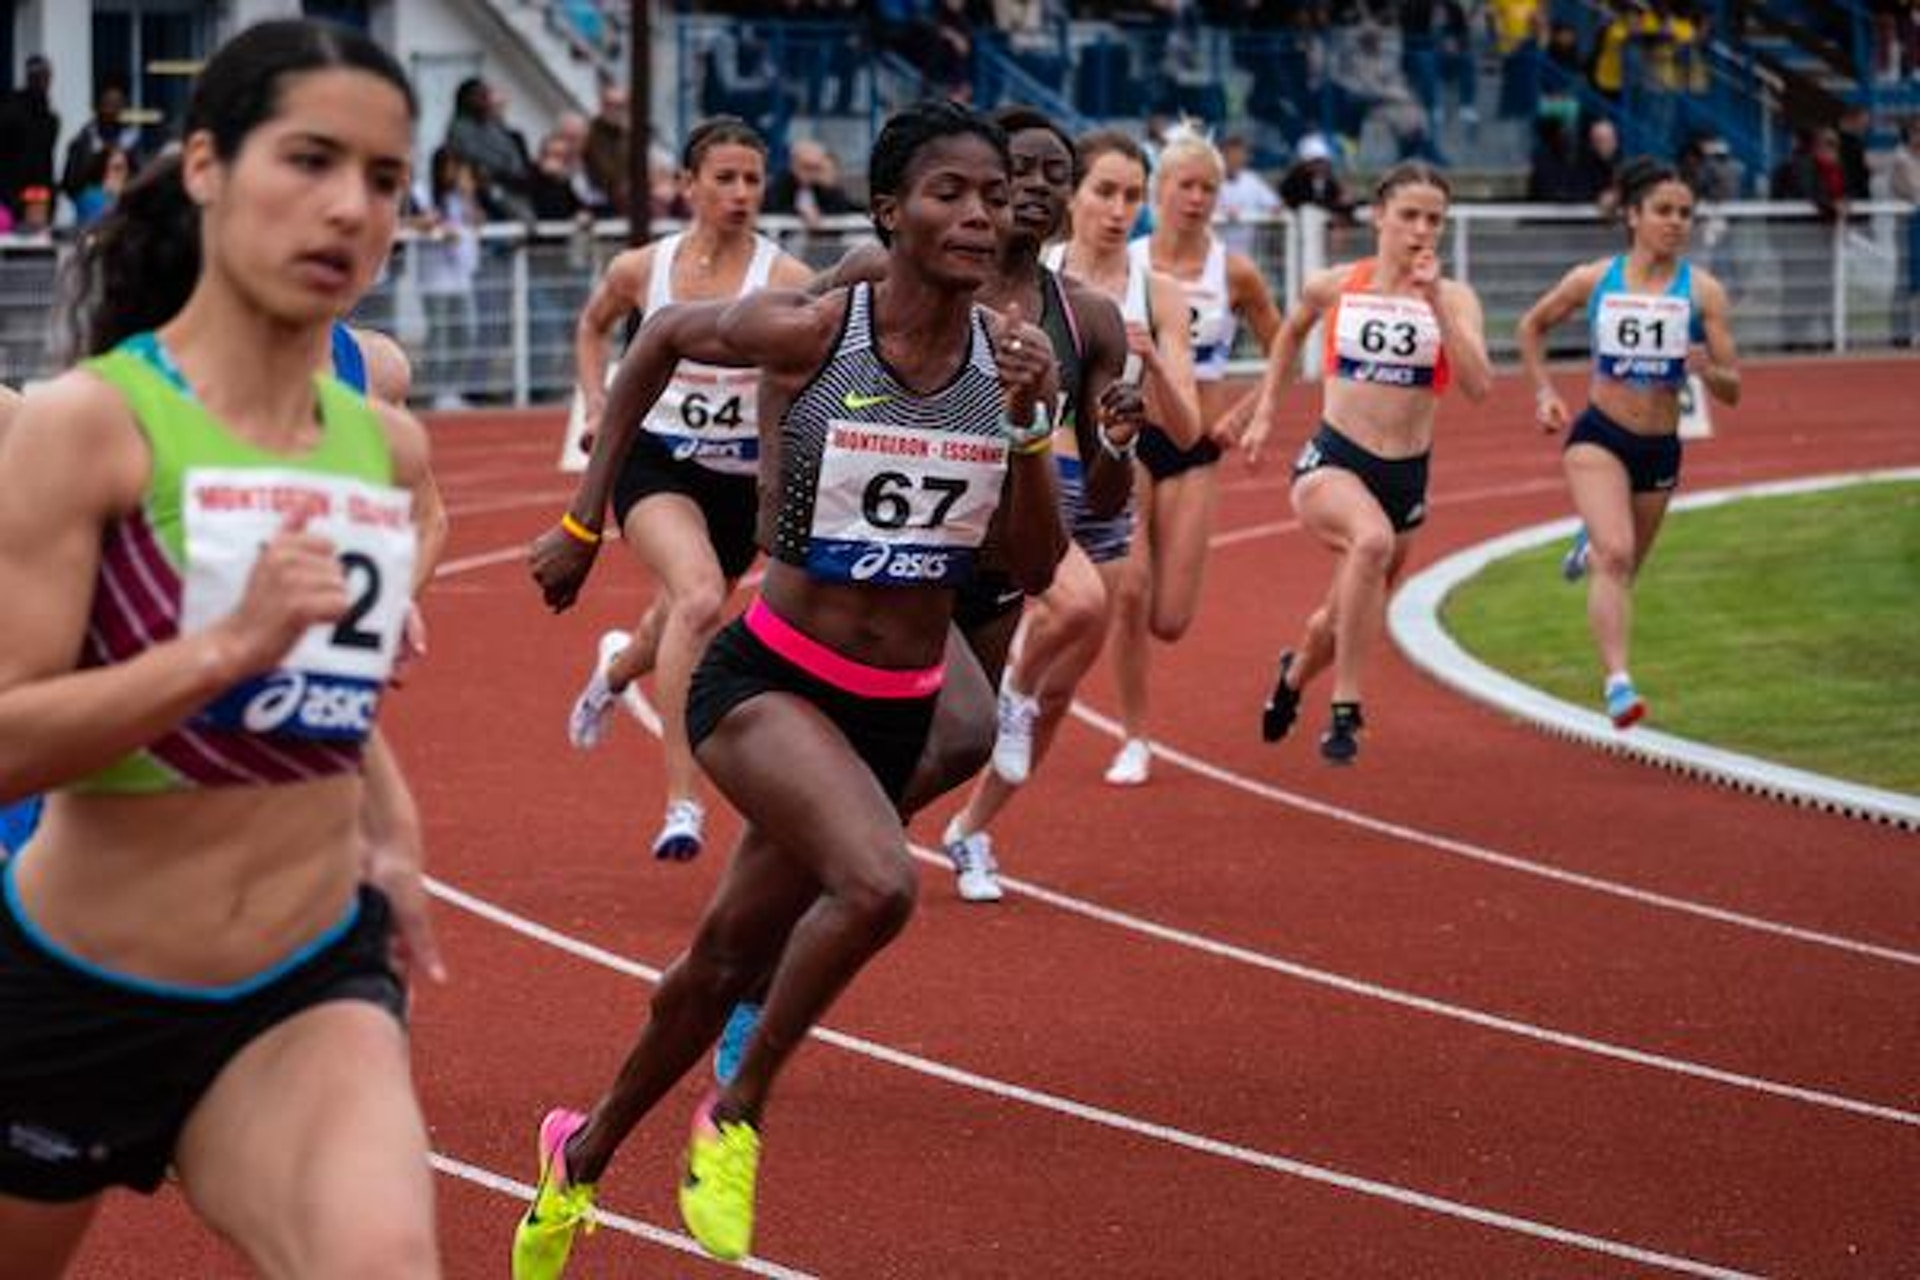 photo of a race of runners in the stadium